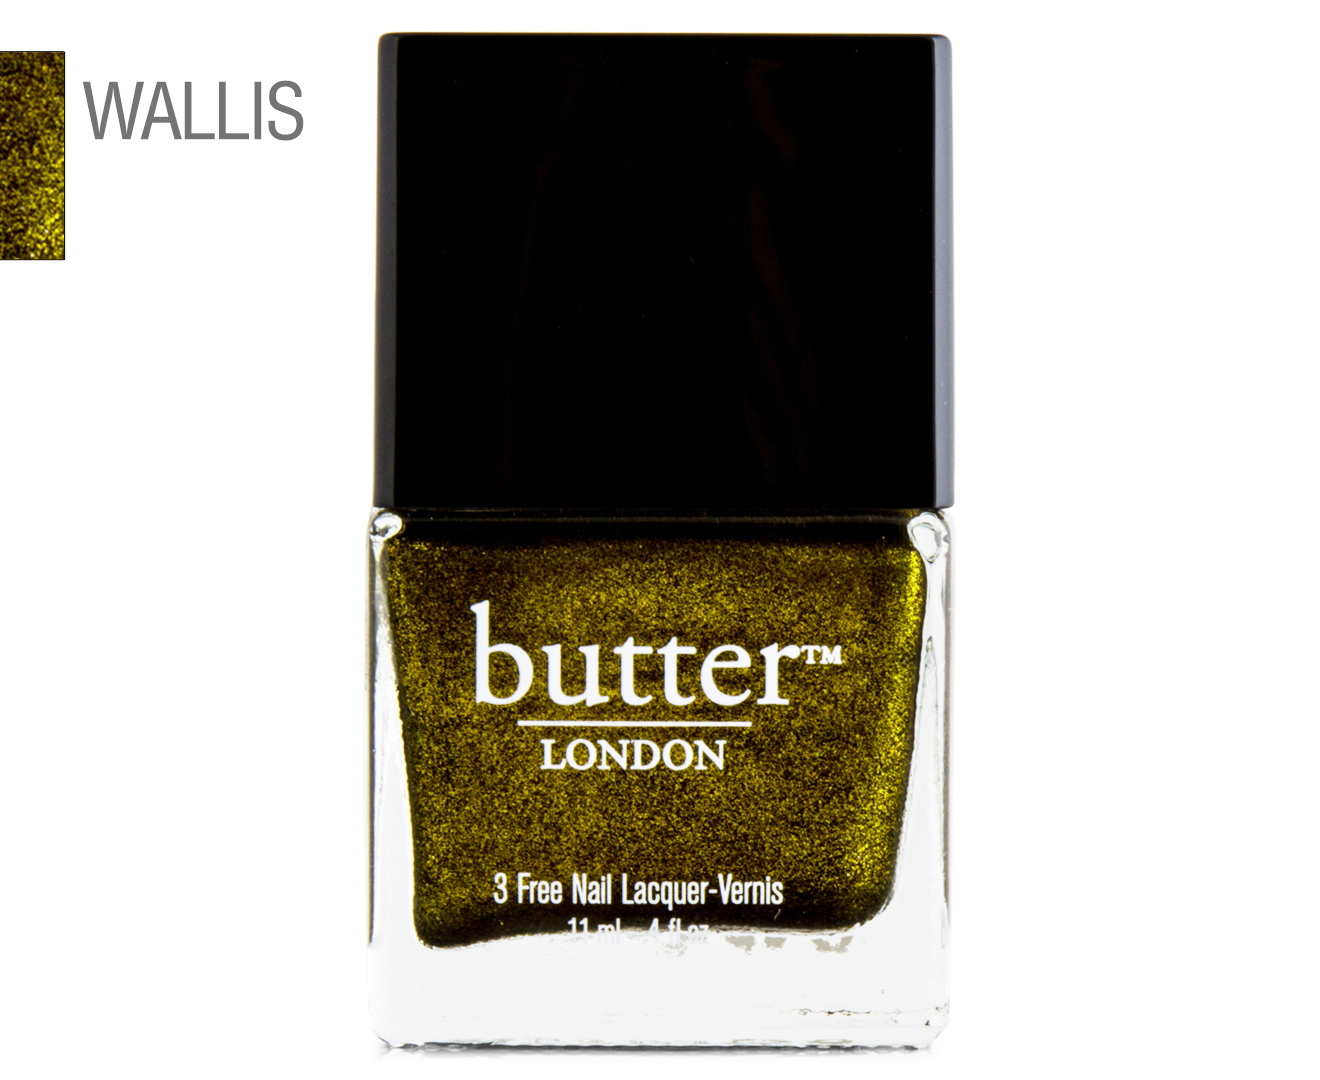 butter London Nail Lacquer - Wallis